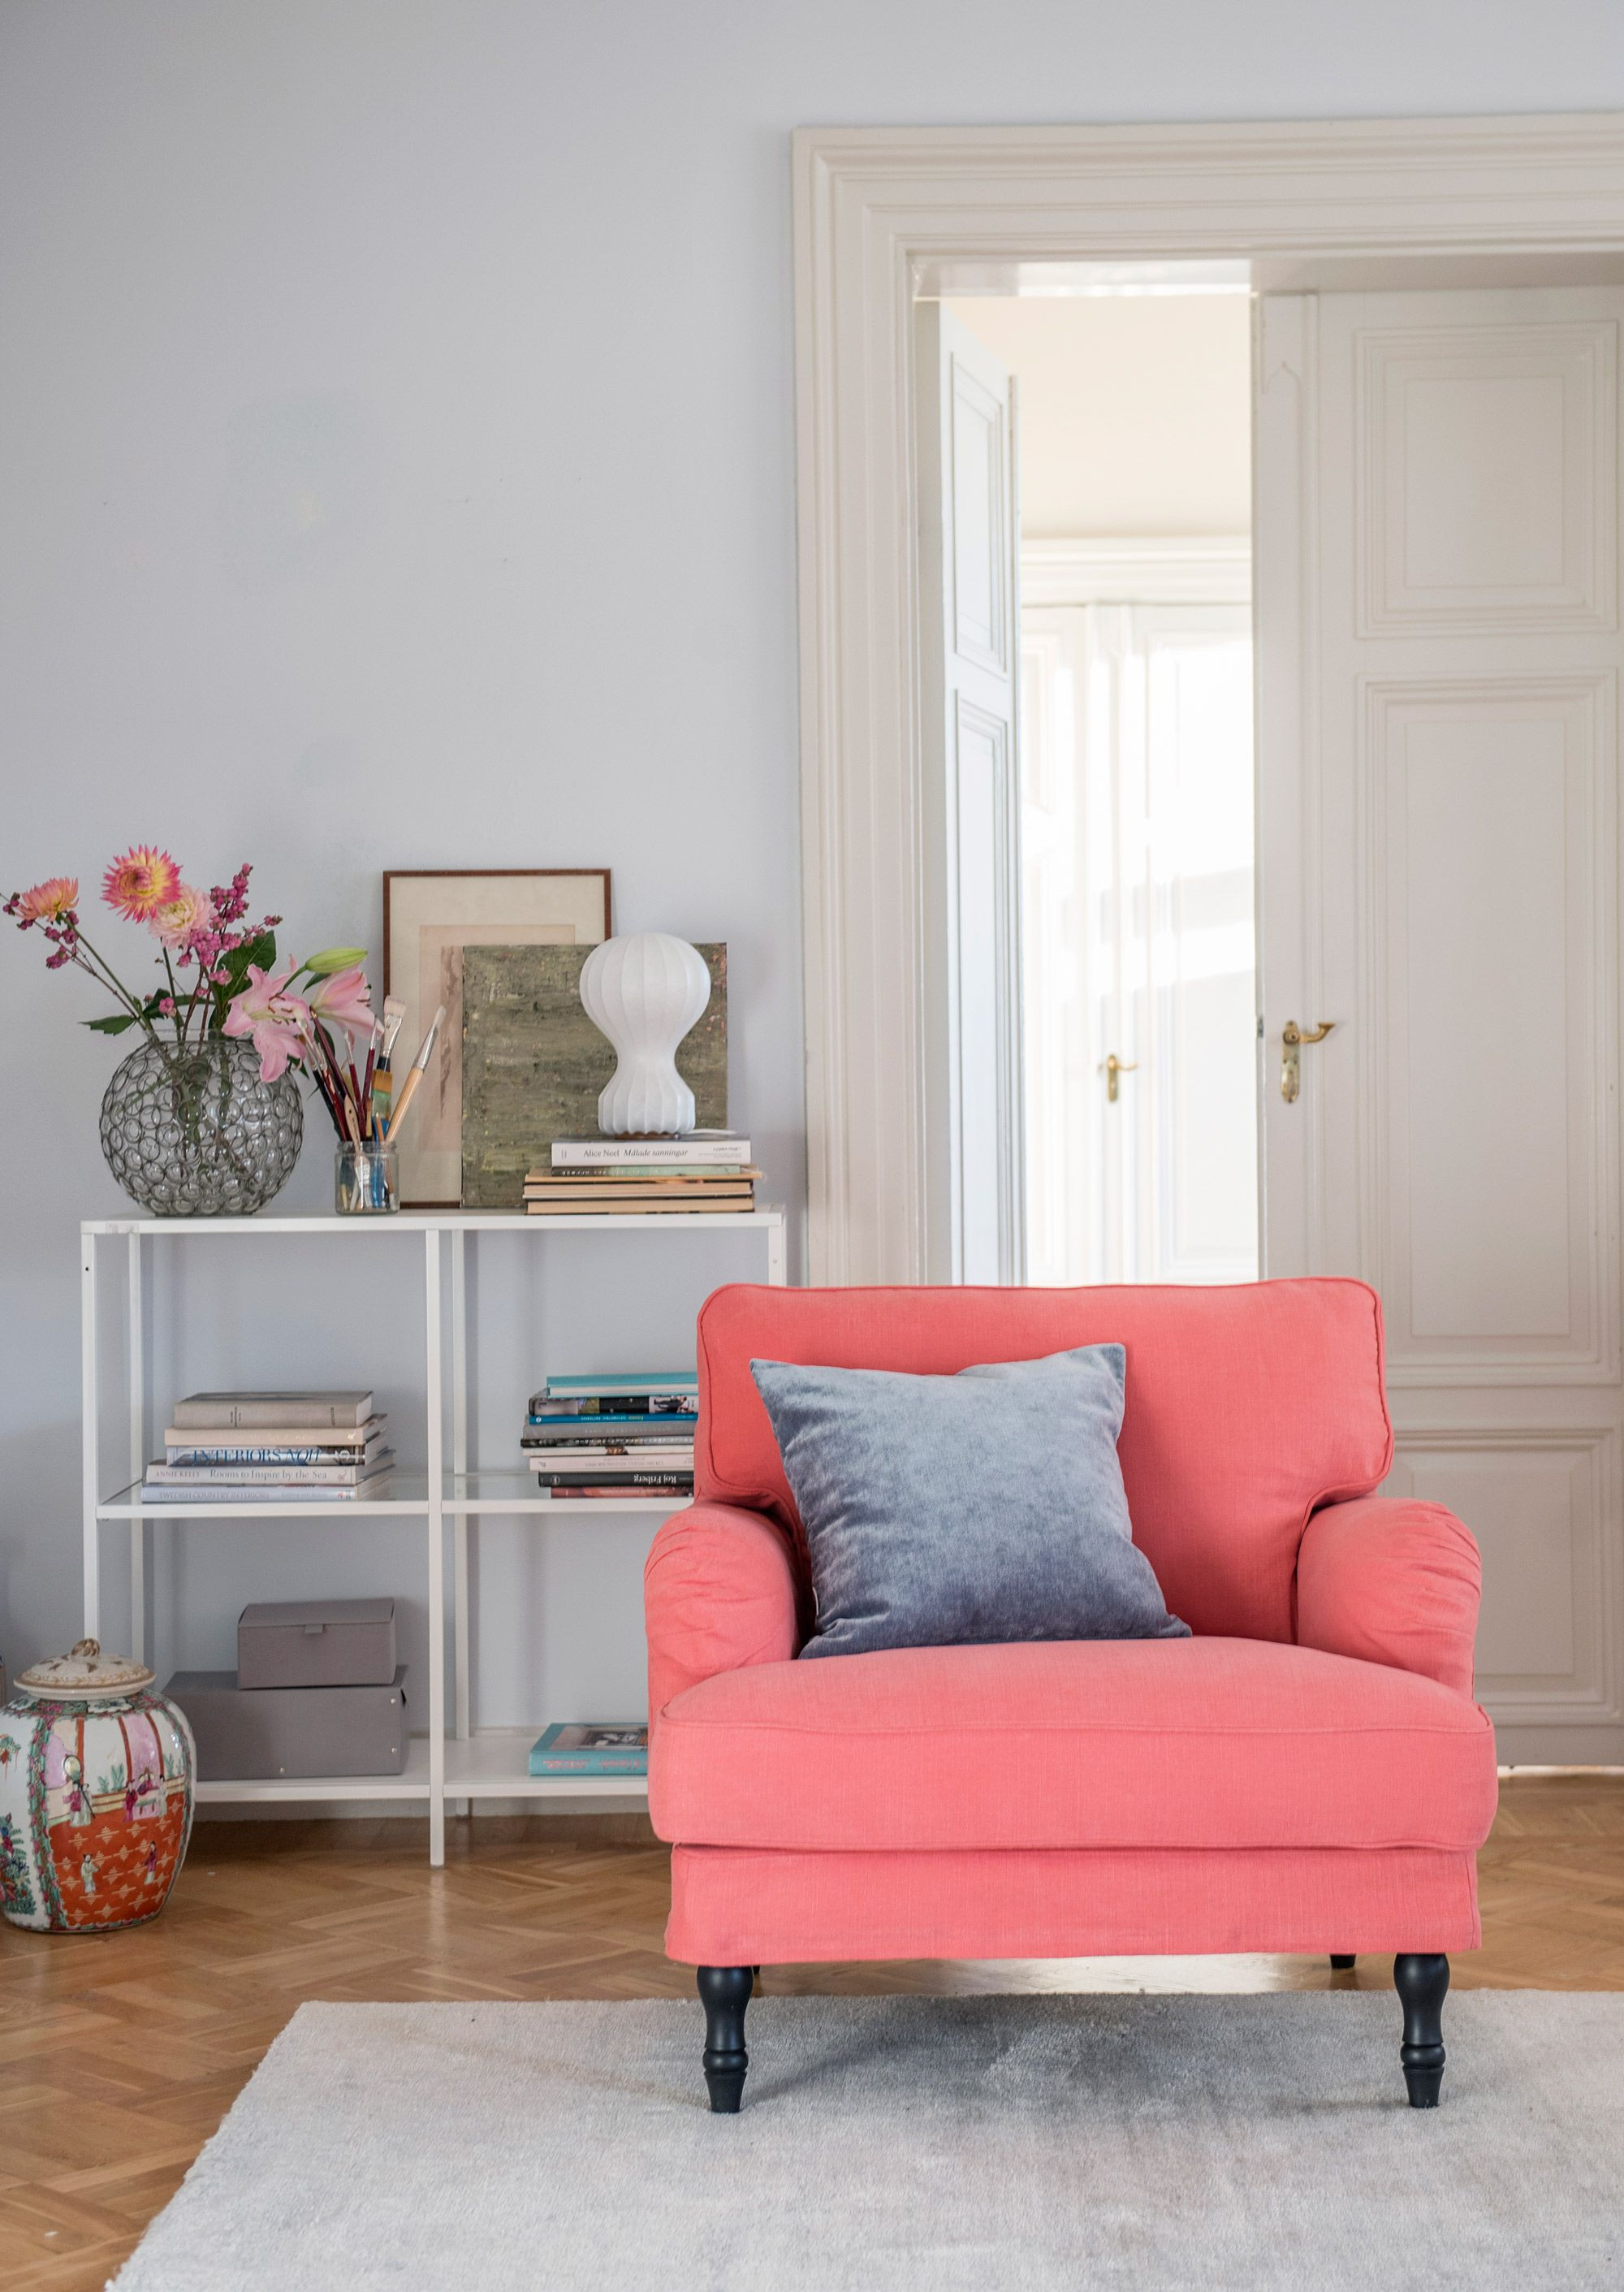 Living Room Storage Coral Red Armchair With A Velvet Cushion